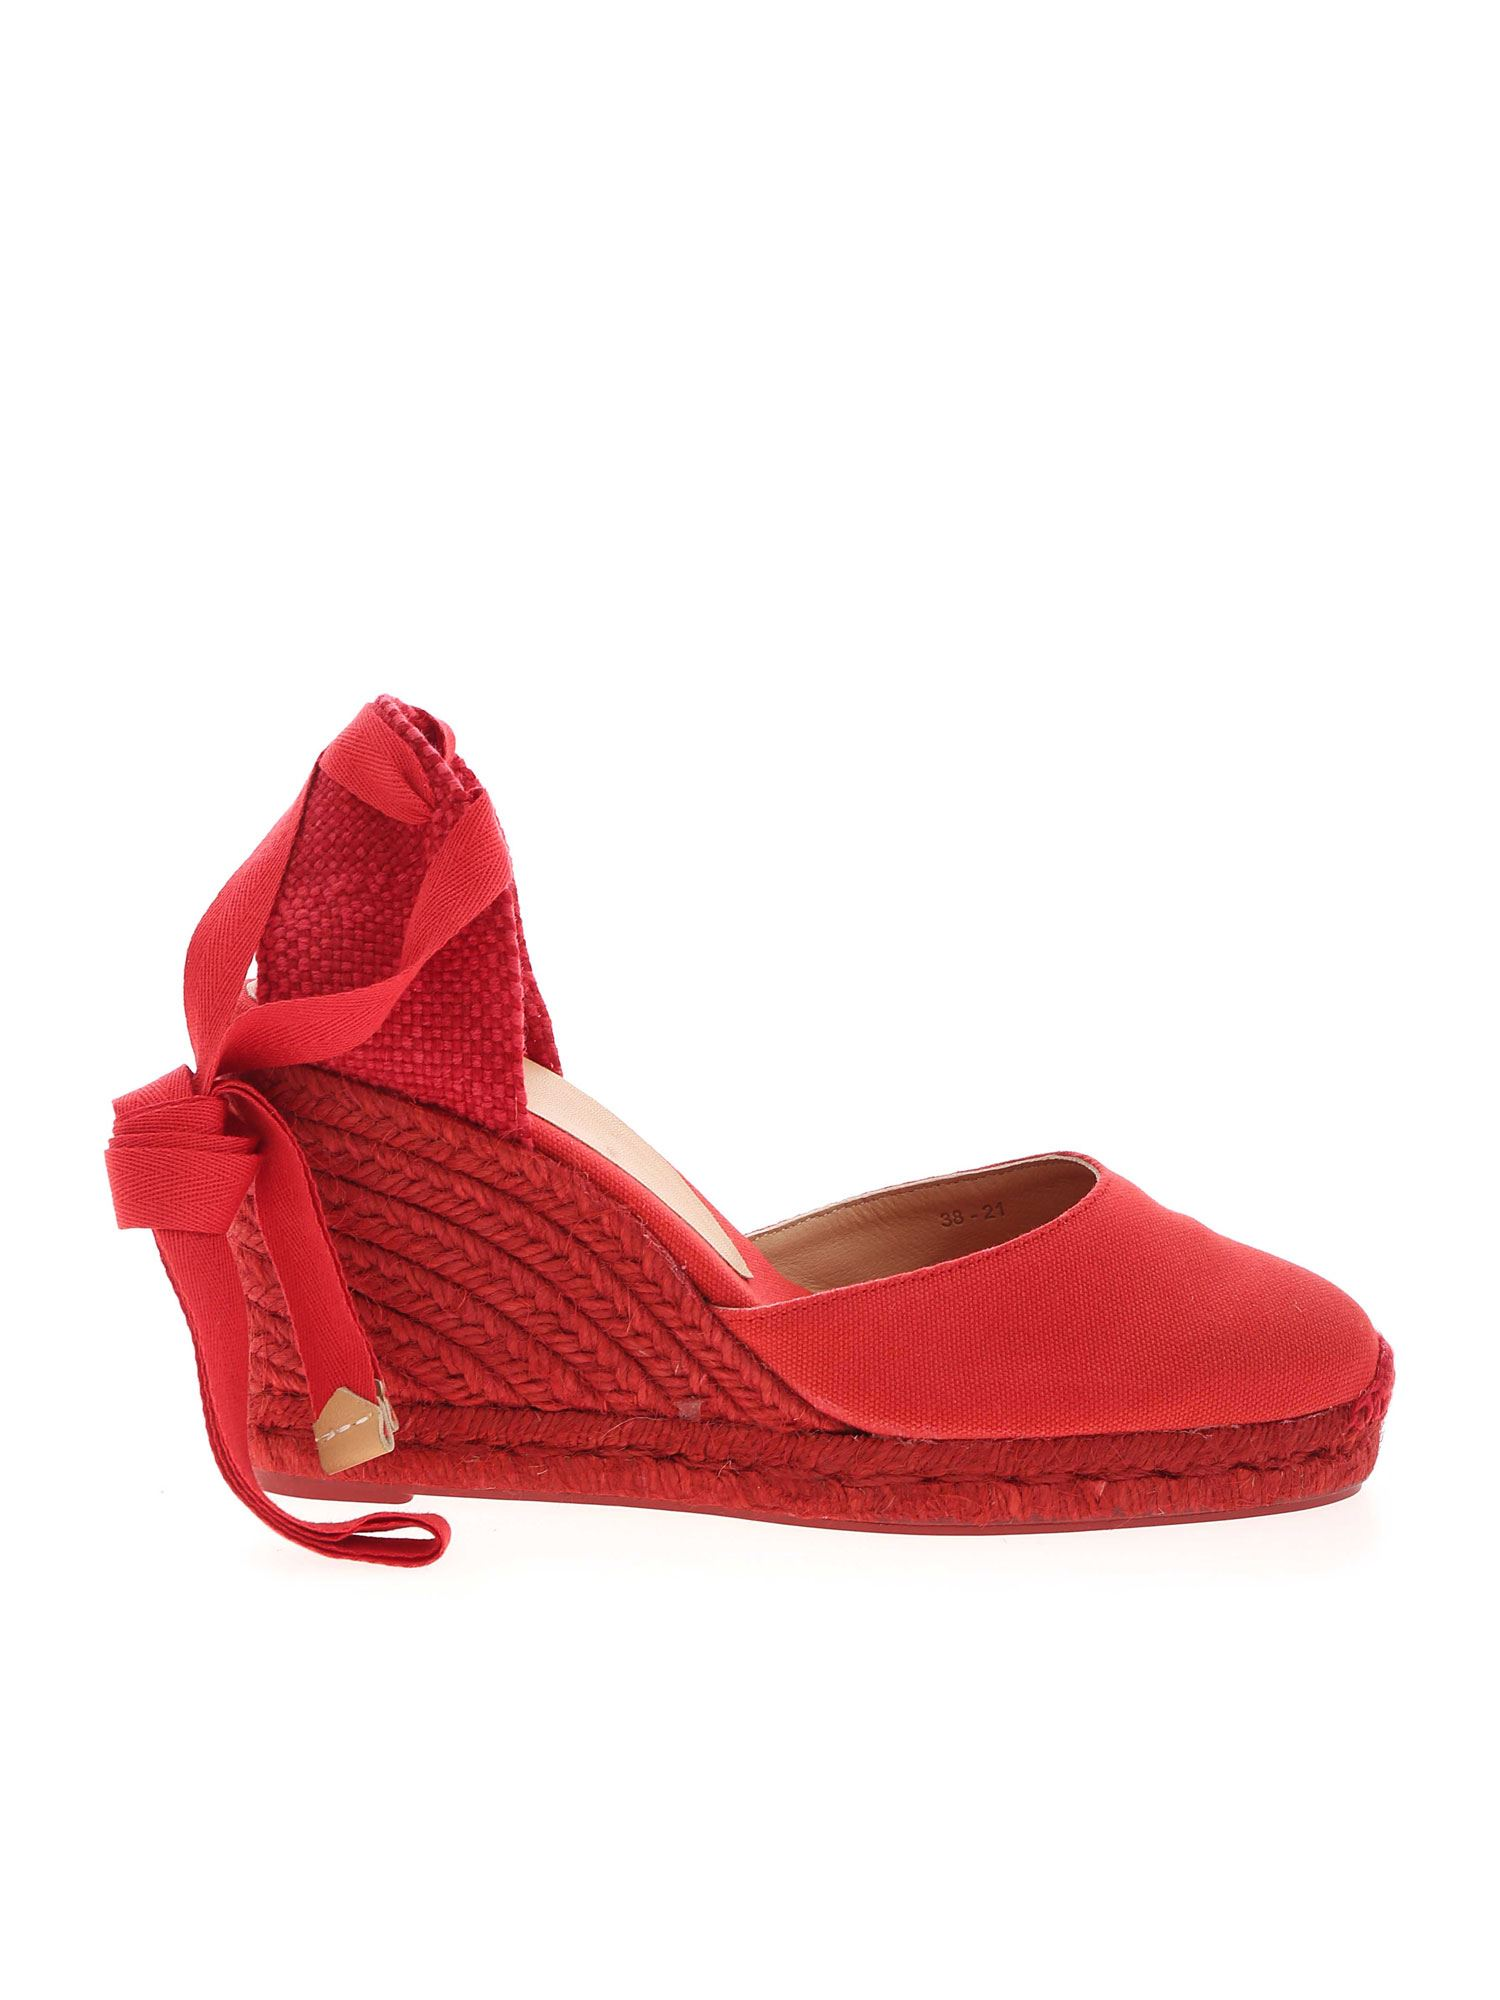 CASTAñER Wedges CARINA WEDGE ESPADRILLES IN RED